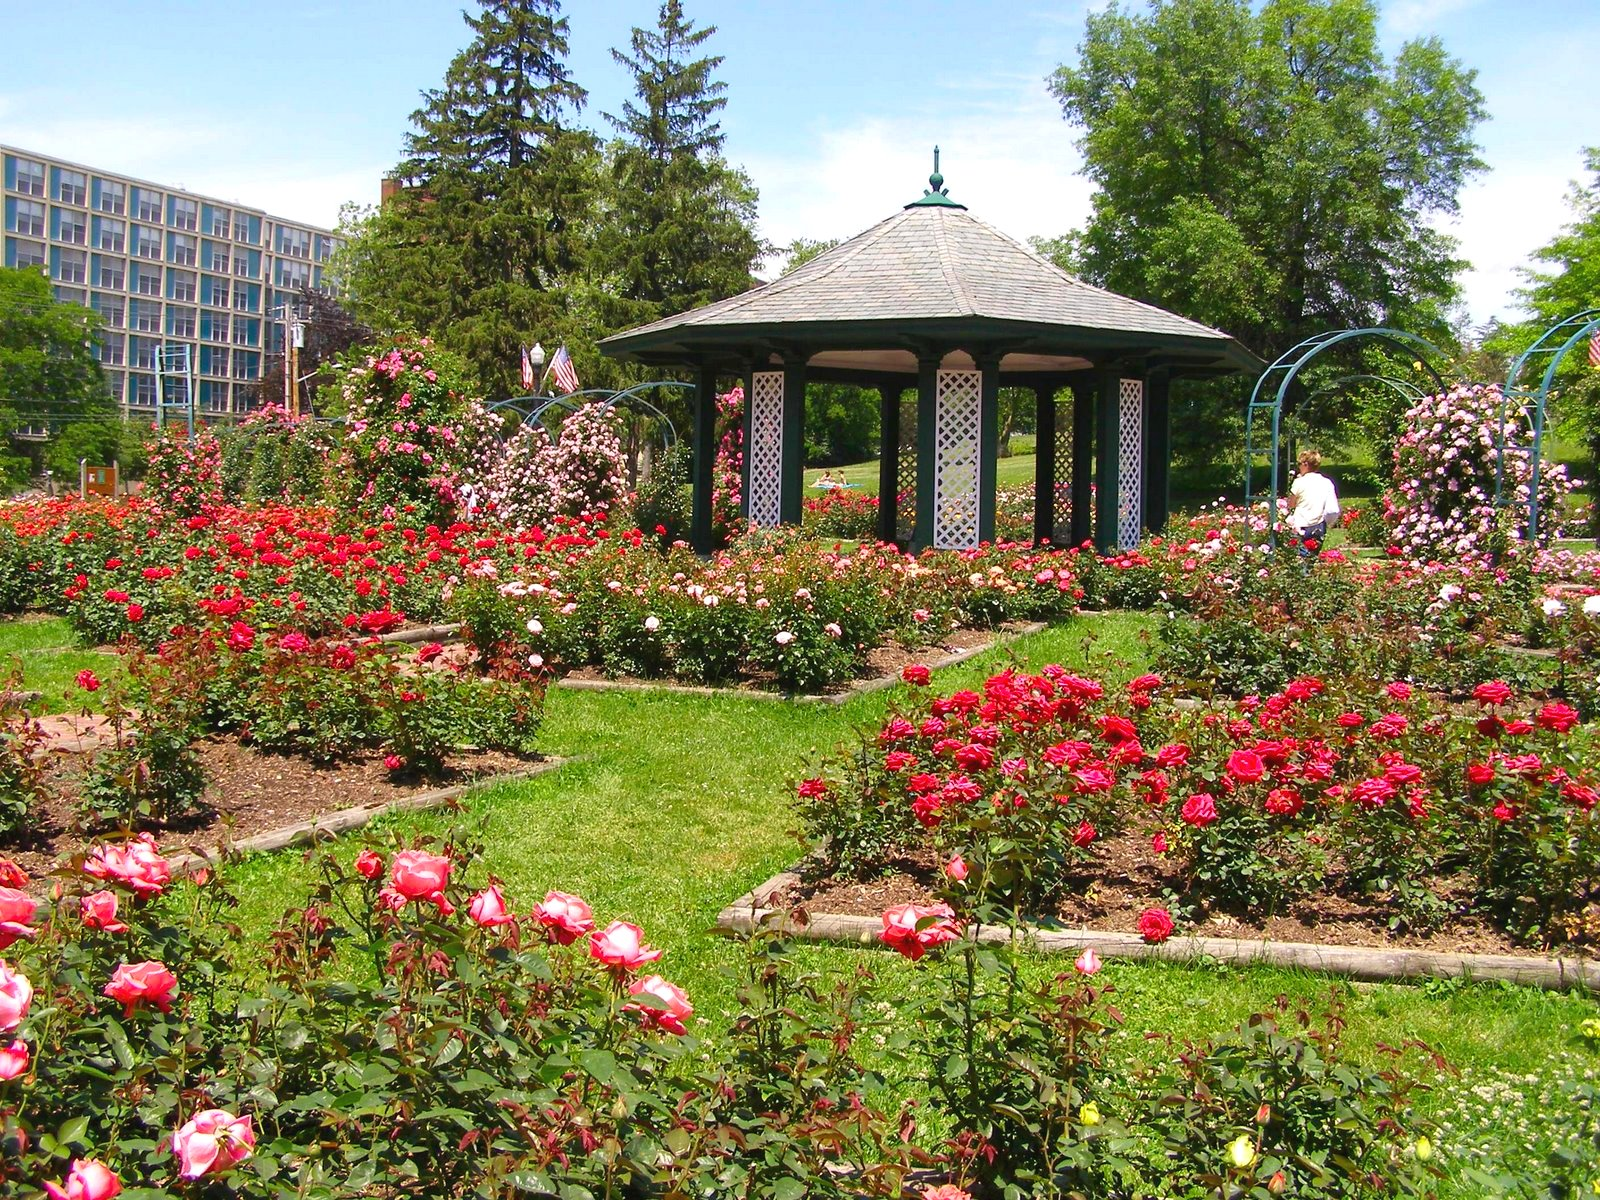 The Syracuse Rose Society Will Open A National Conference Today At The  Sheraton Hotel To Rose Enthusiasts From Around The Country.